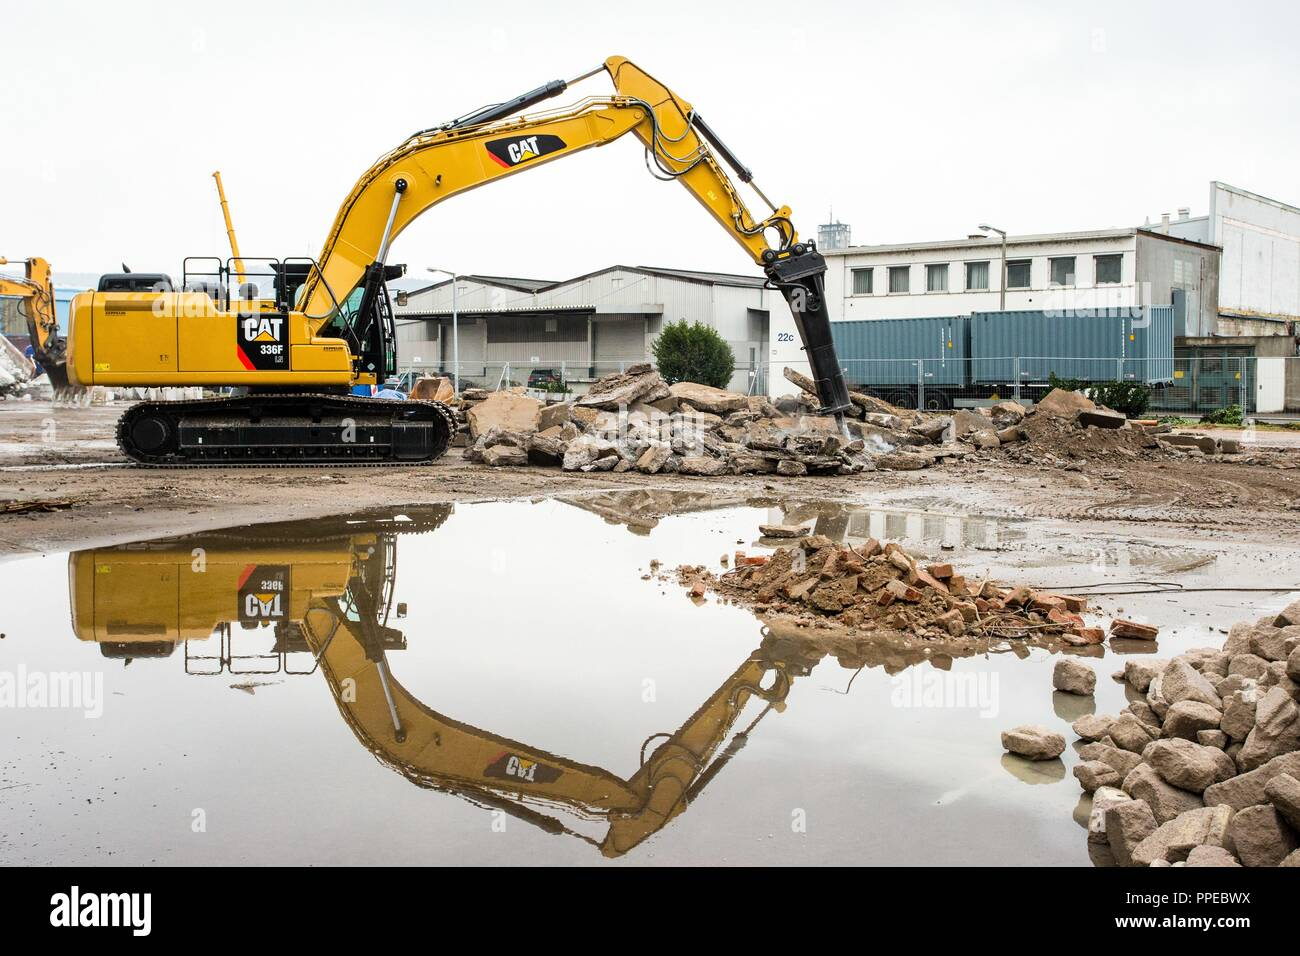 A brand new Caterpillar 336F LN excavator with hammer be